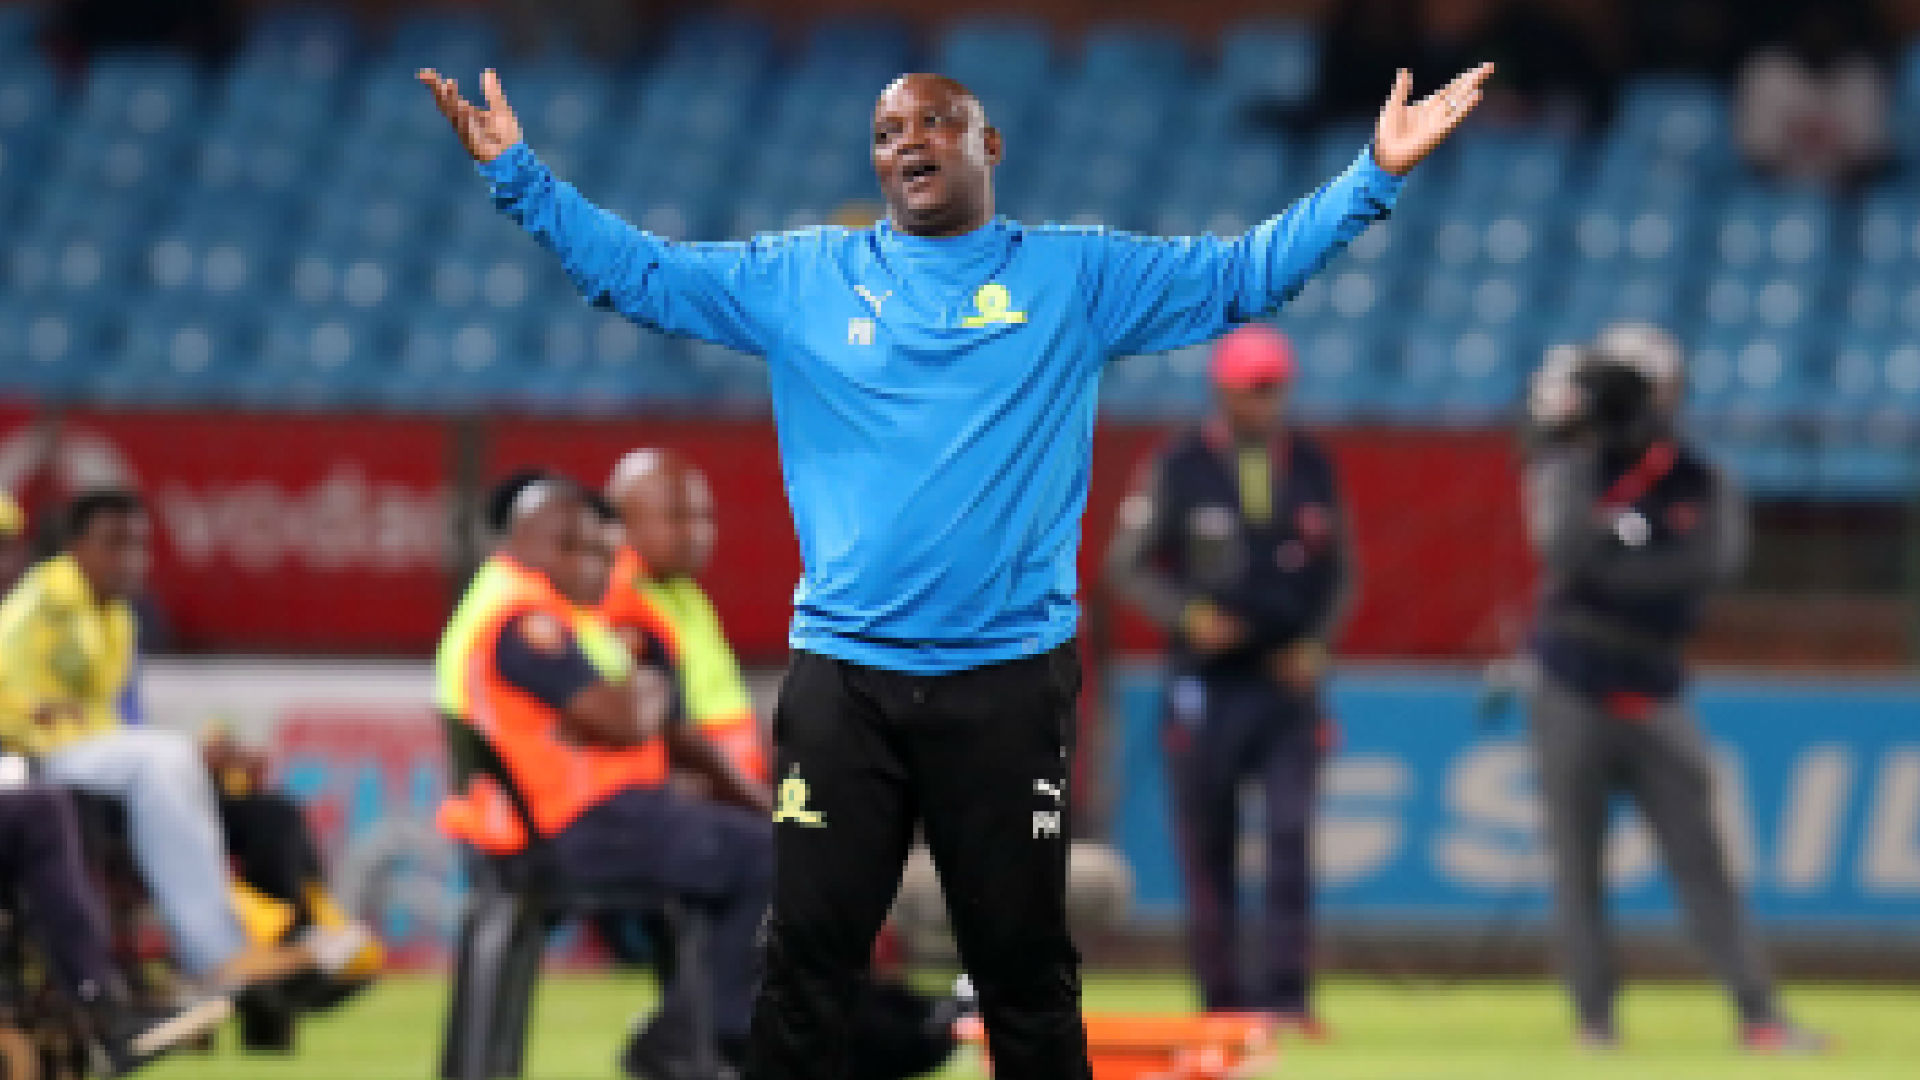 Mamelodi Sundowns coach Mosimane praises Tembo and hopes SuperSport United wins MTN8